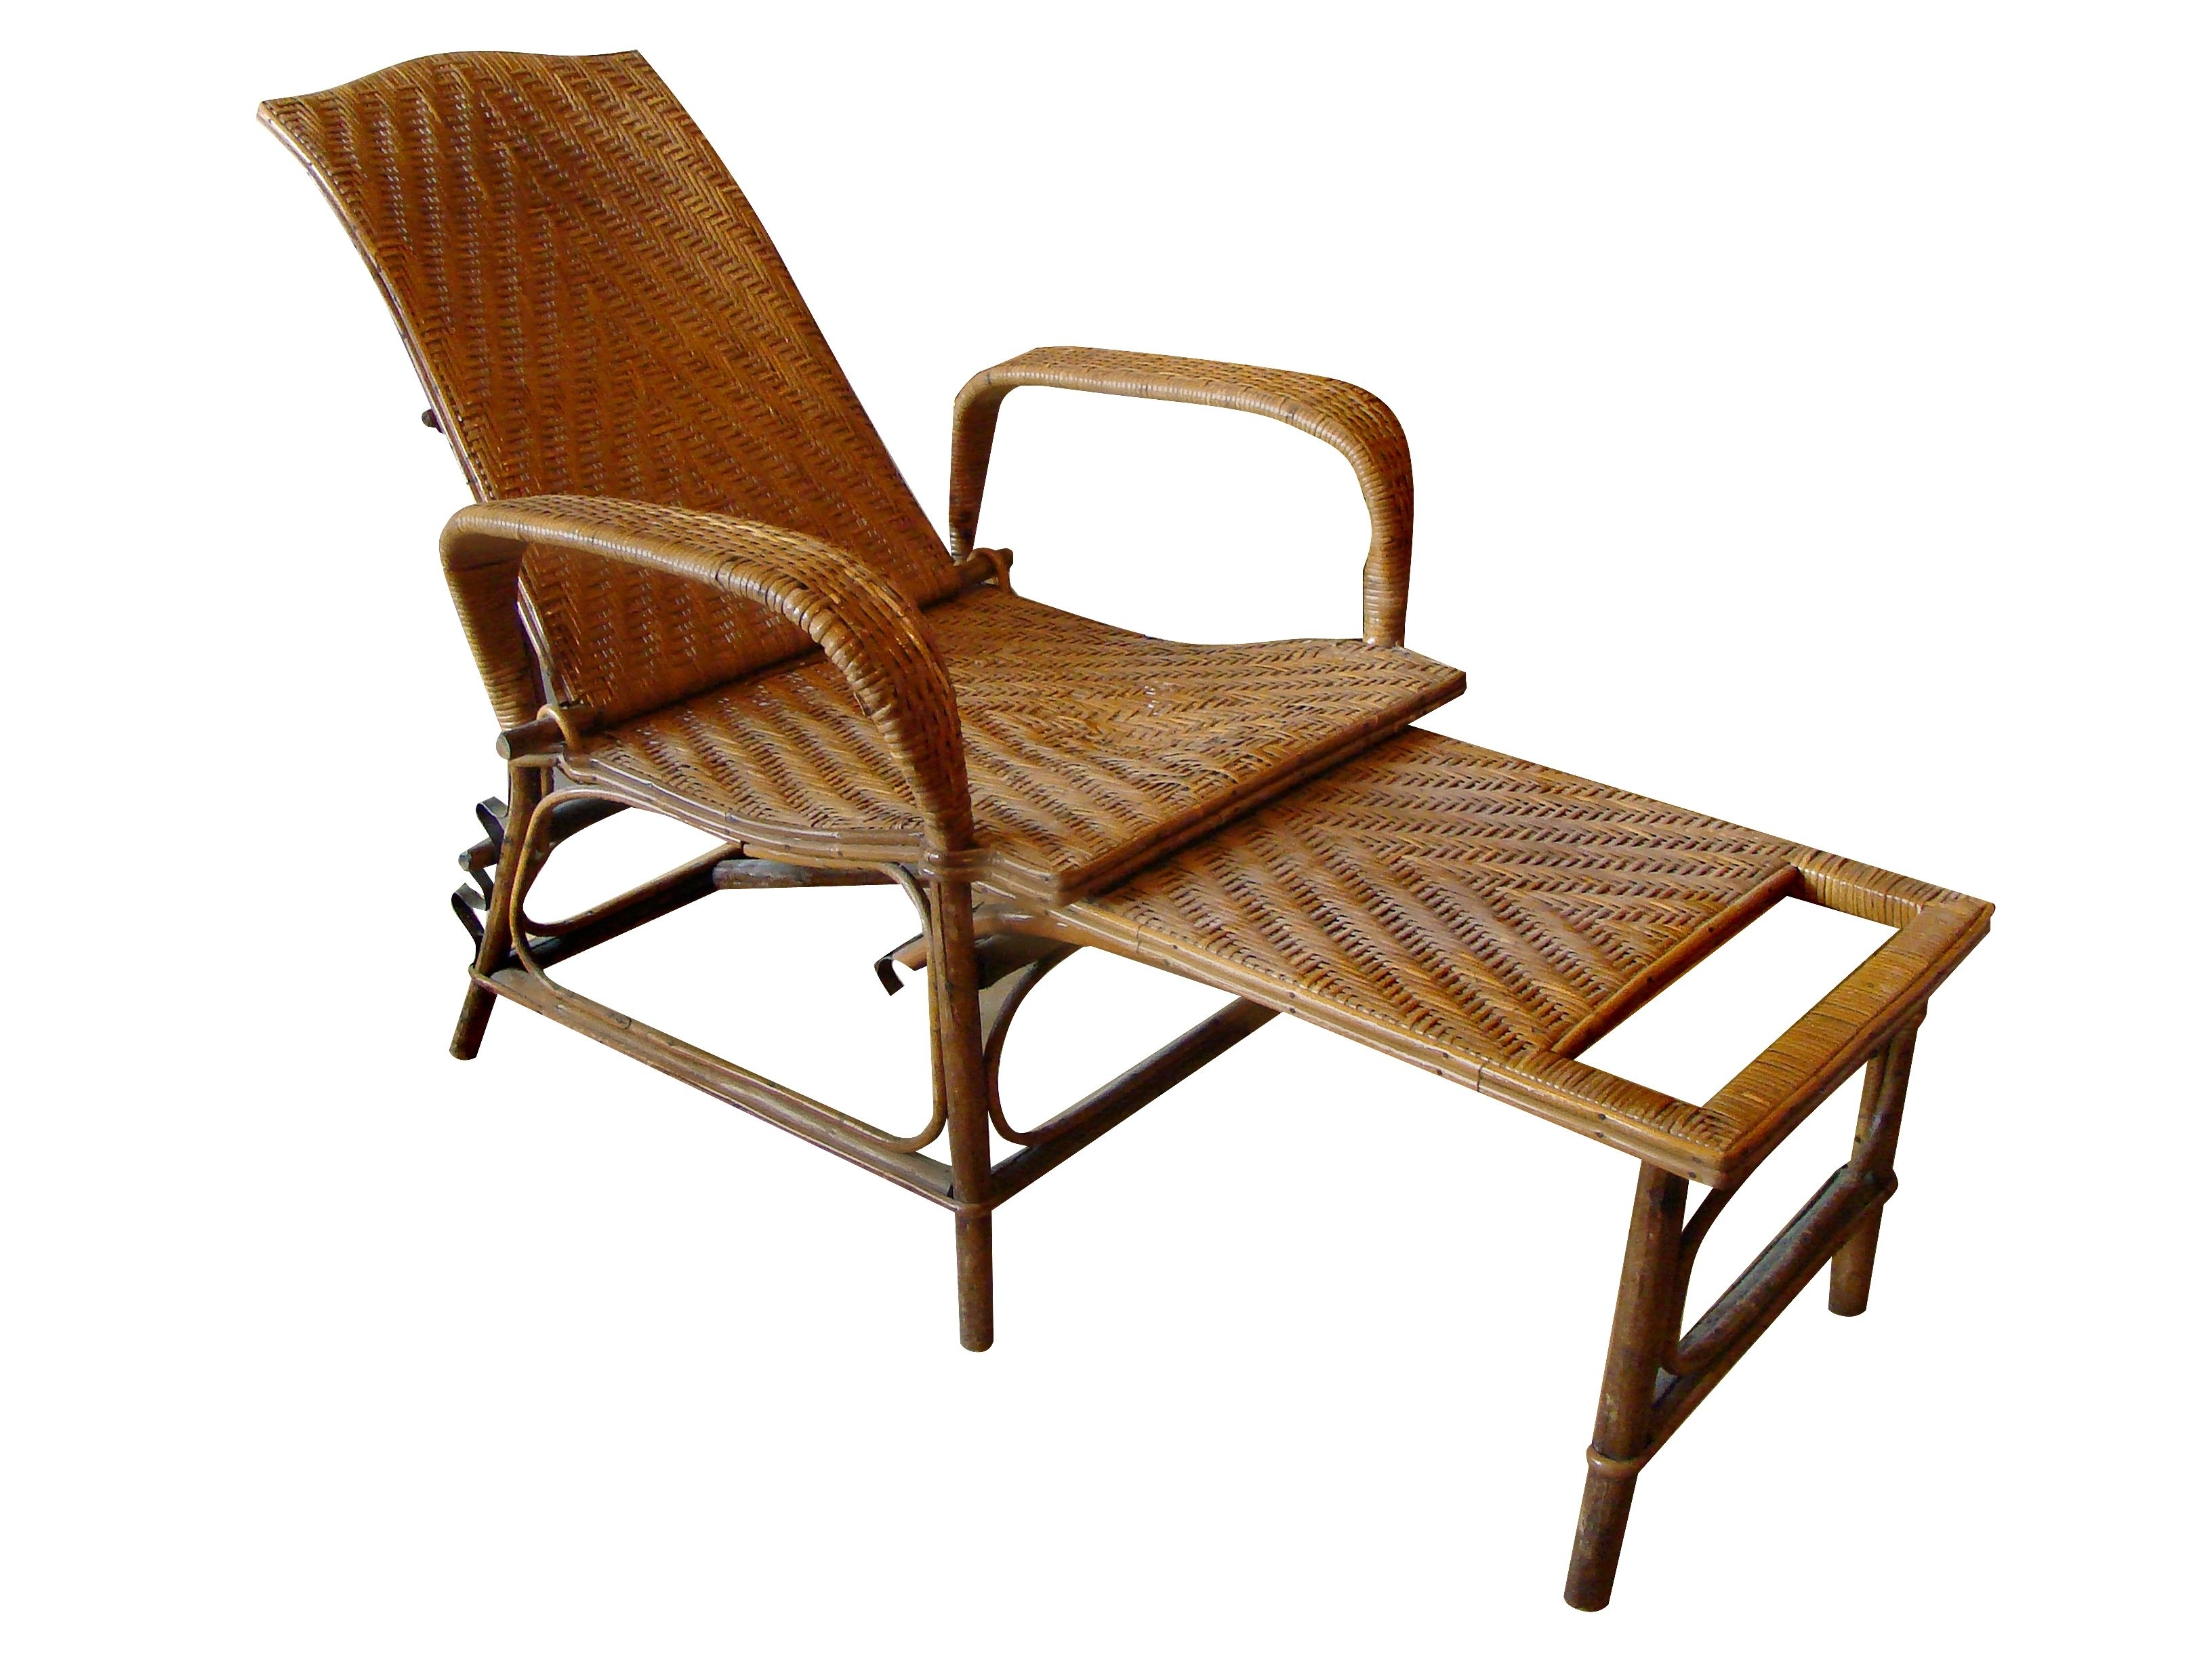 Preferred Chaise Lounge Chairs With Ottoman Pertaining To Vintage Rattan And Bamboo Chaise Lounge (View 14 of 15)